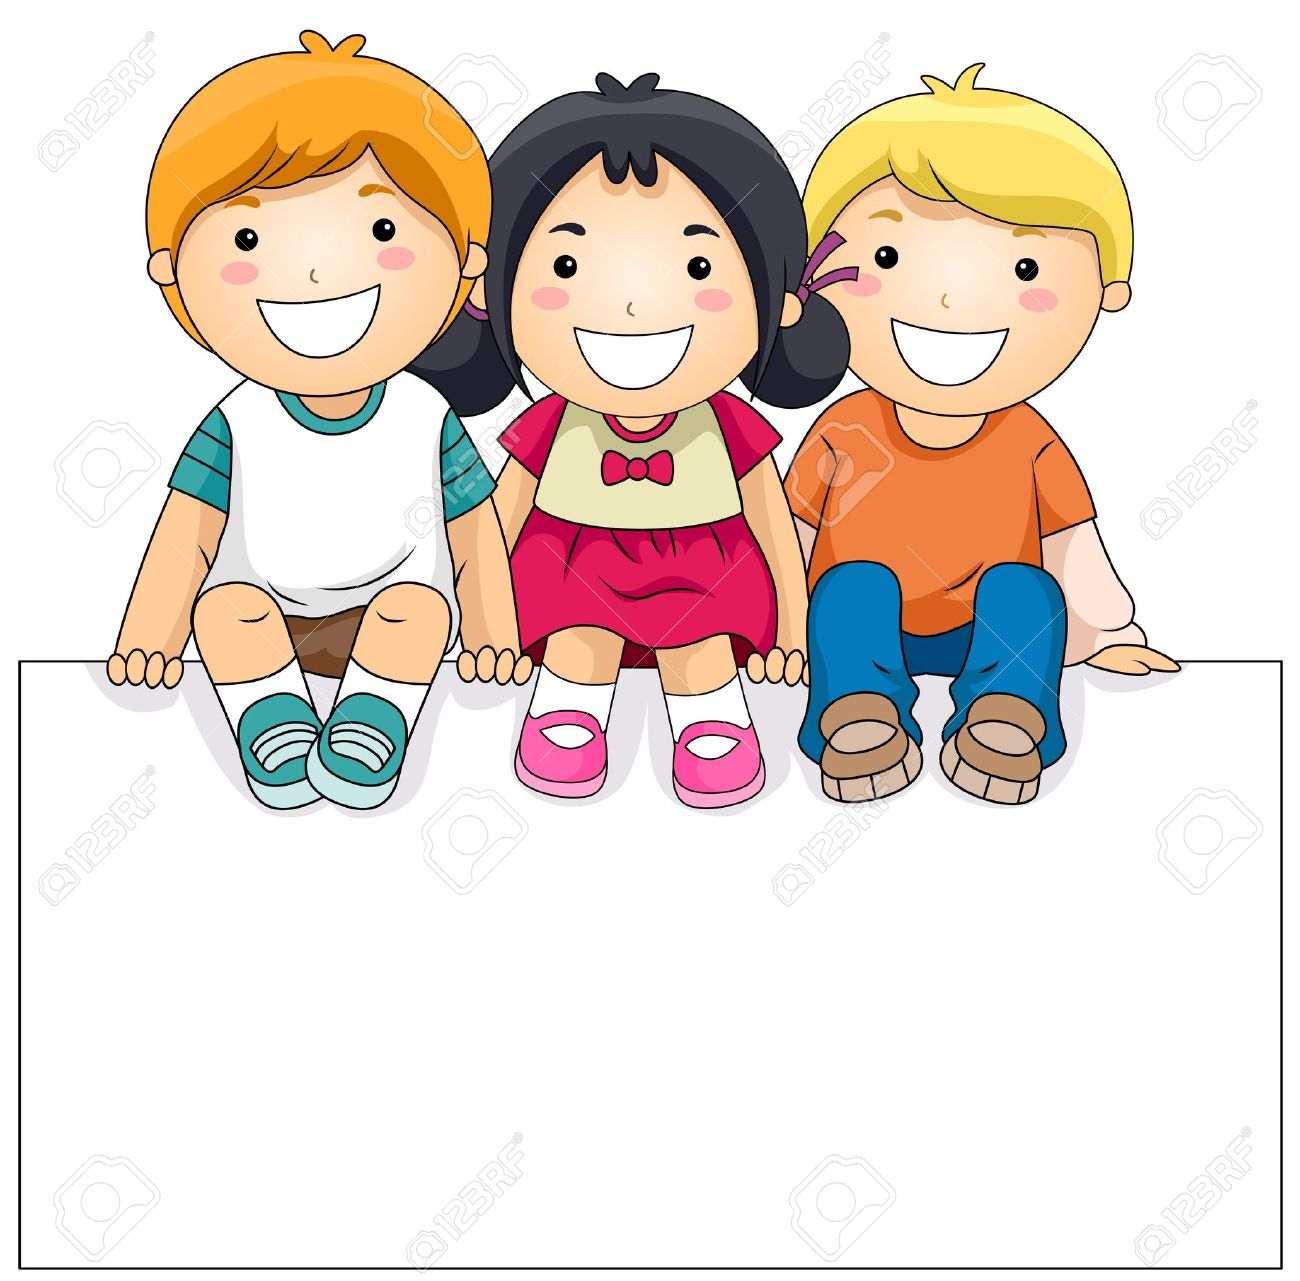 Children clipart kids.